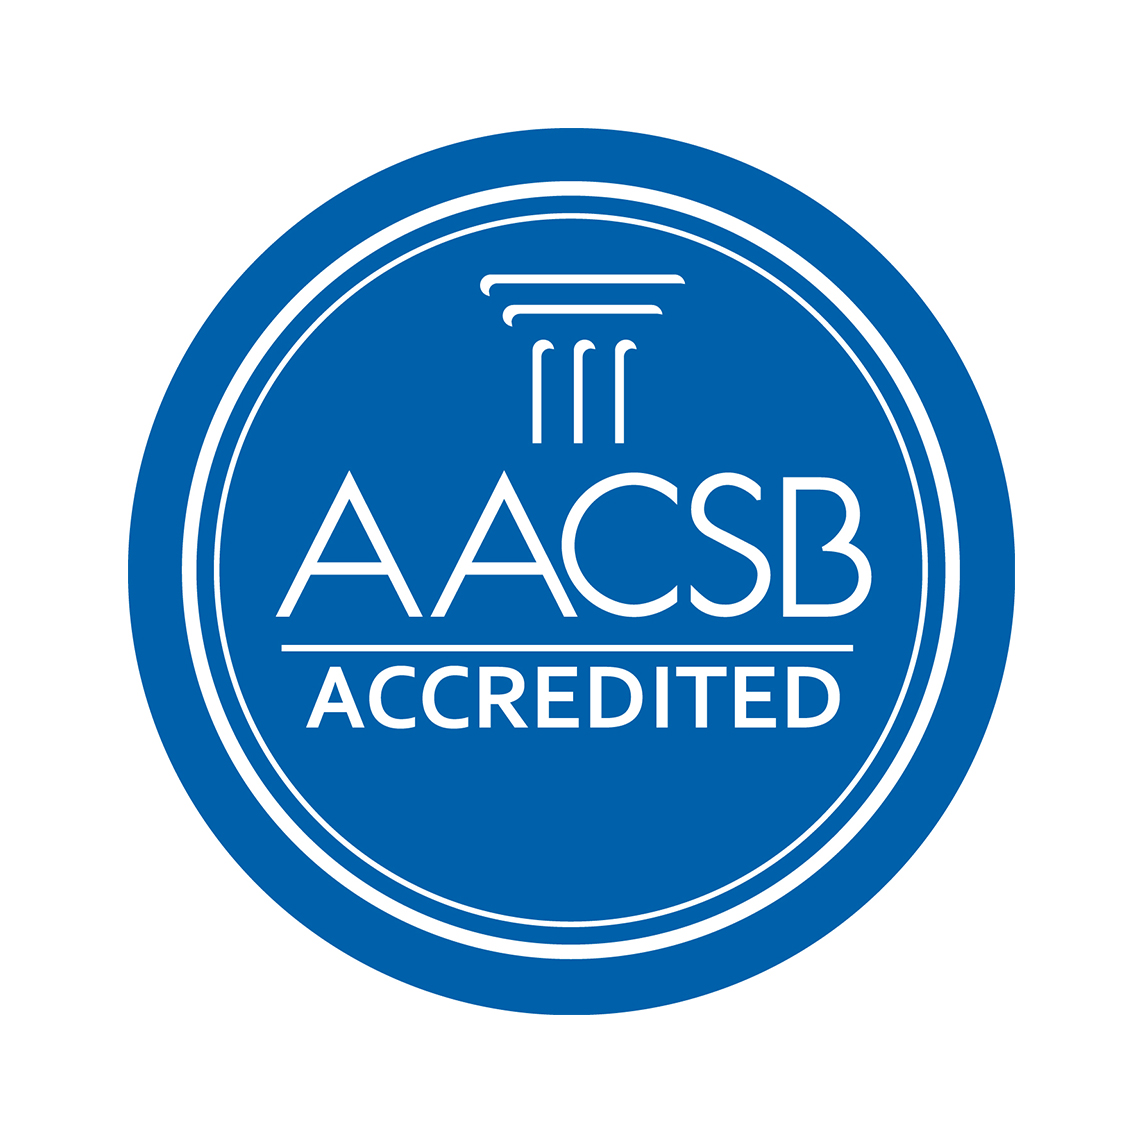 AACSB_seal_final_blue2